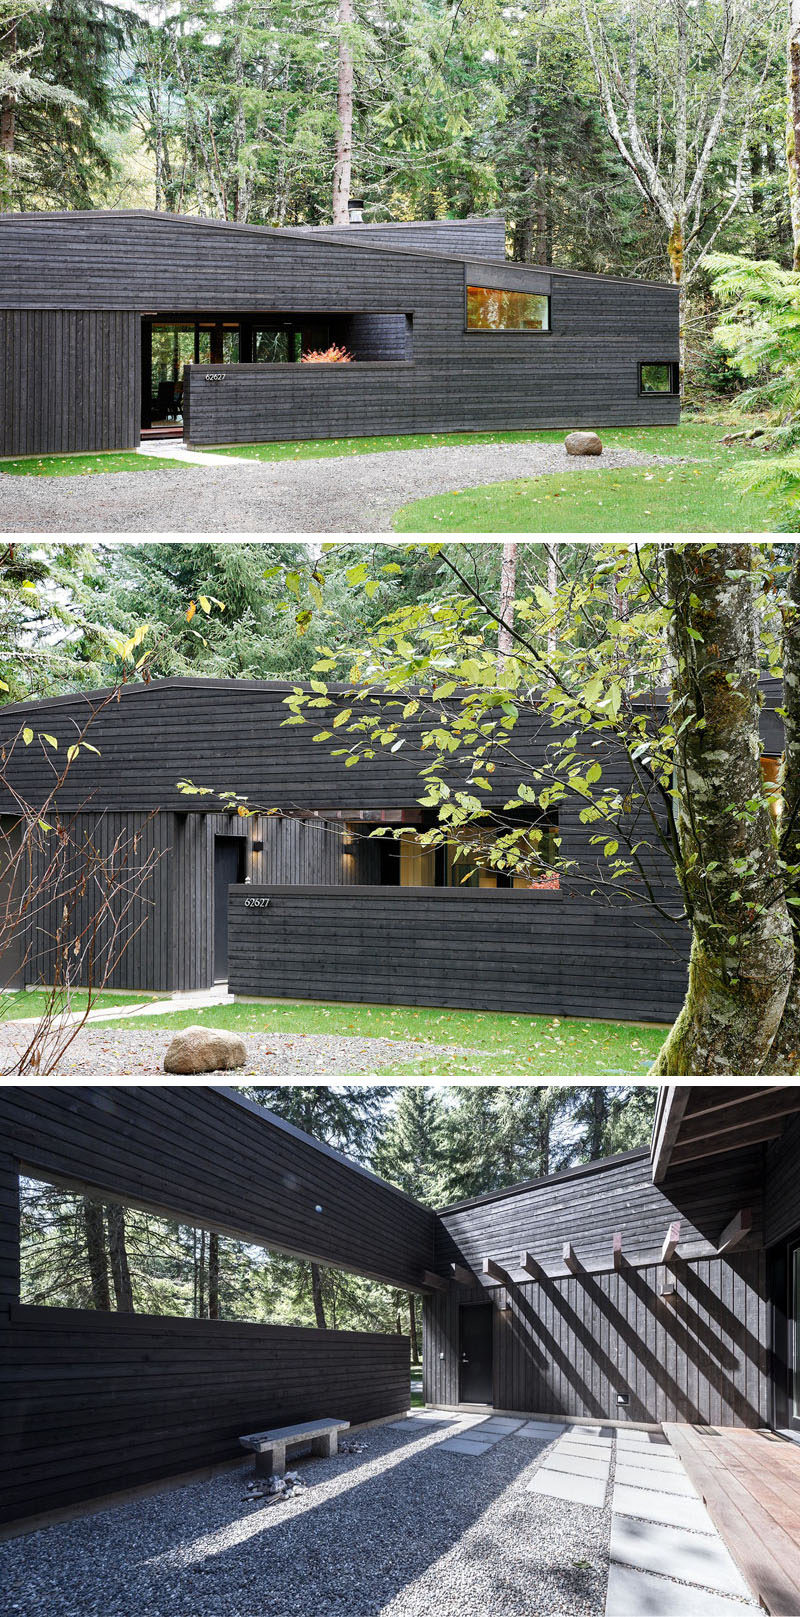 At the front of this modern house, there's a small cut-out allowing a section of the wall to be used as a privacy fence. Behind the wall, there's a entry courtyard that serves as a transitional space before entering the home and helps to keep the many elk herds at bay.